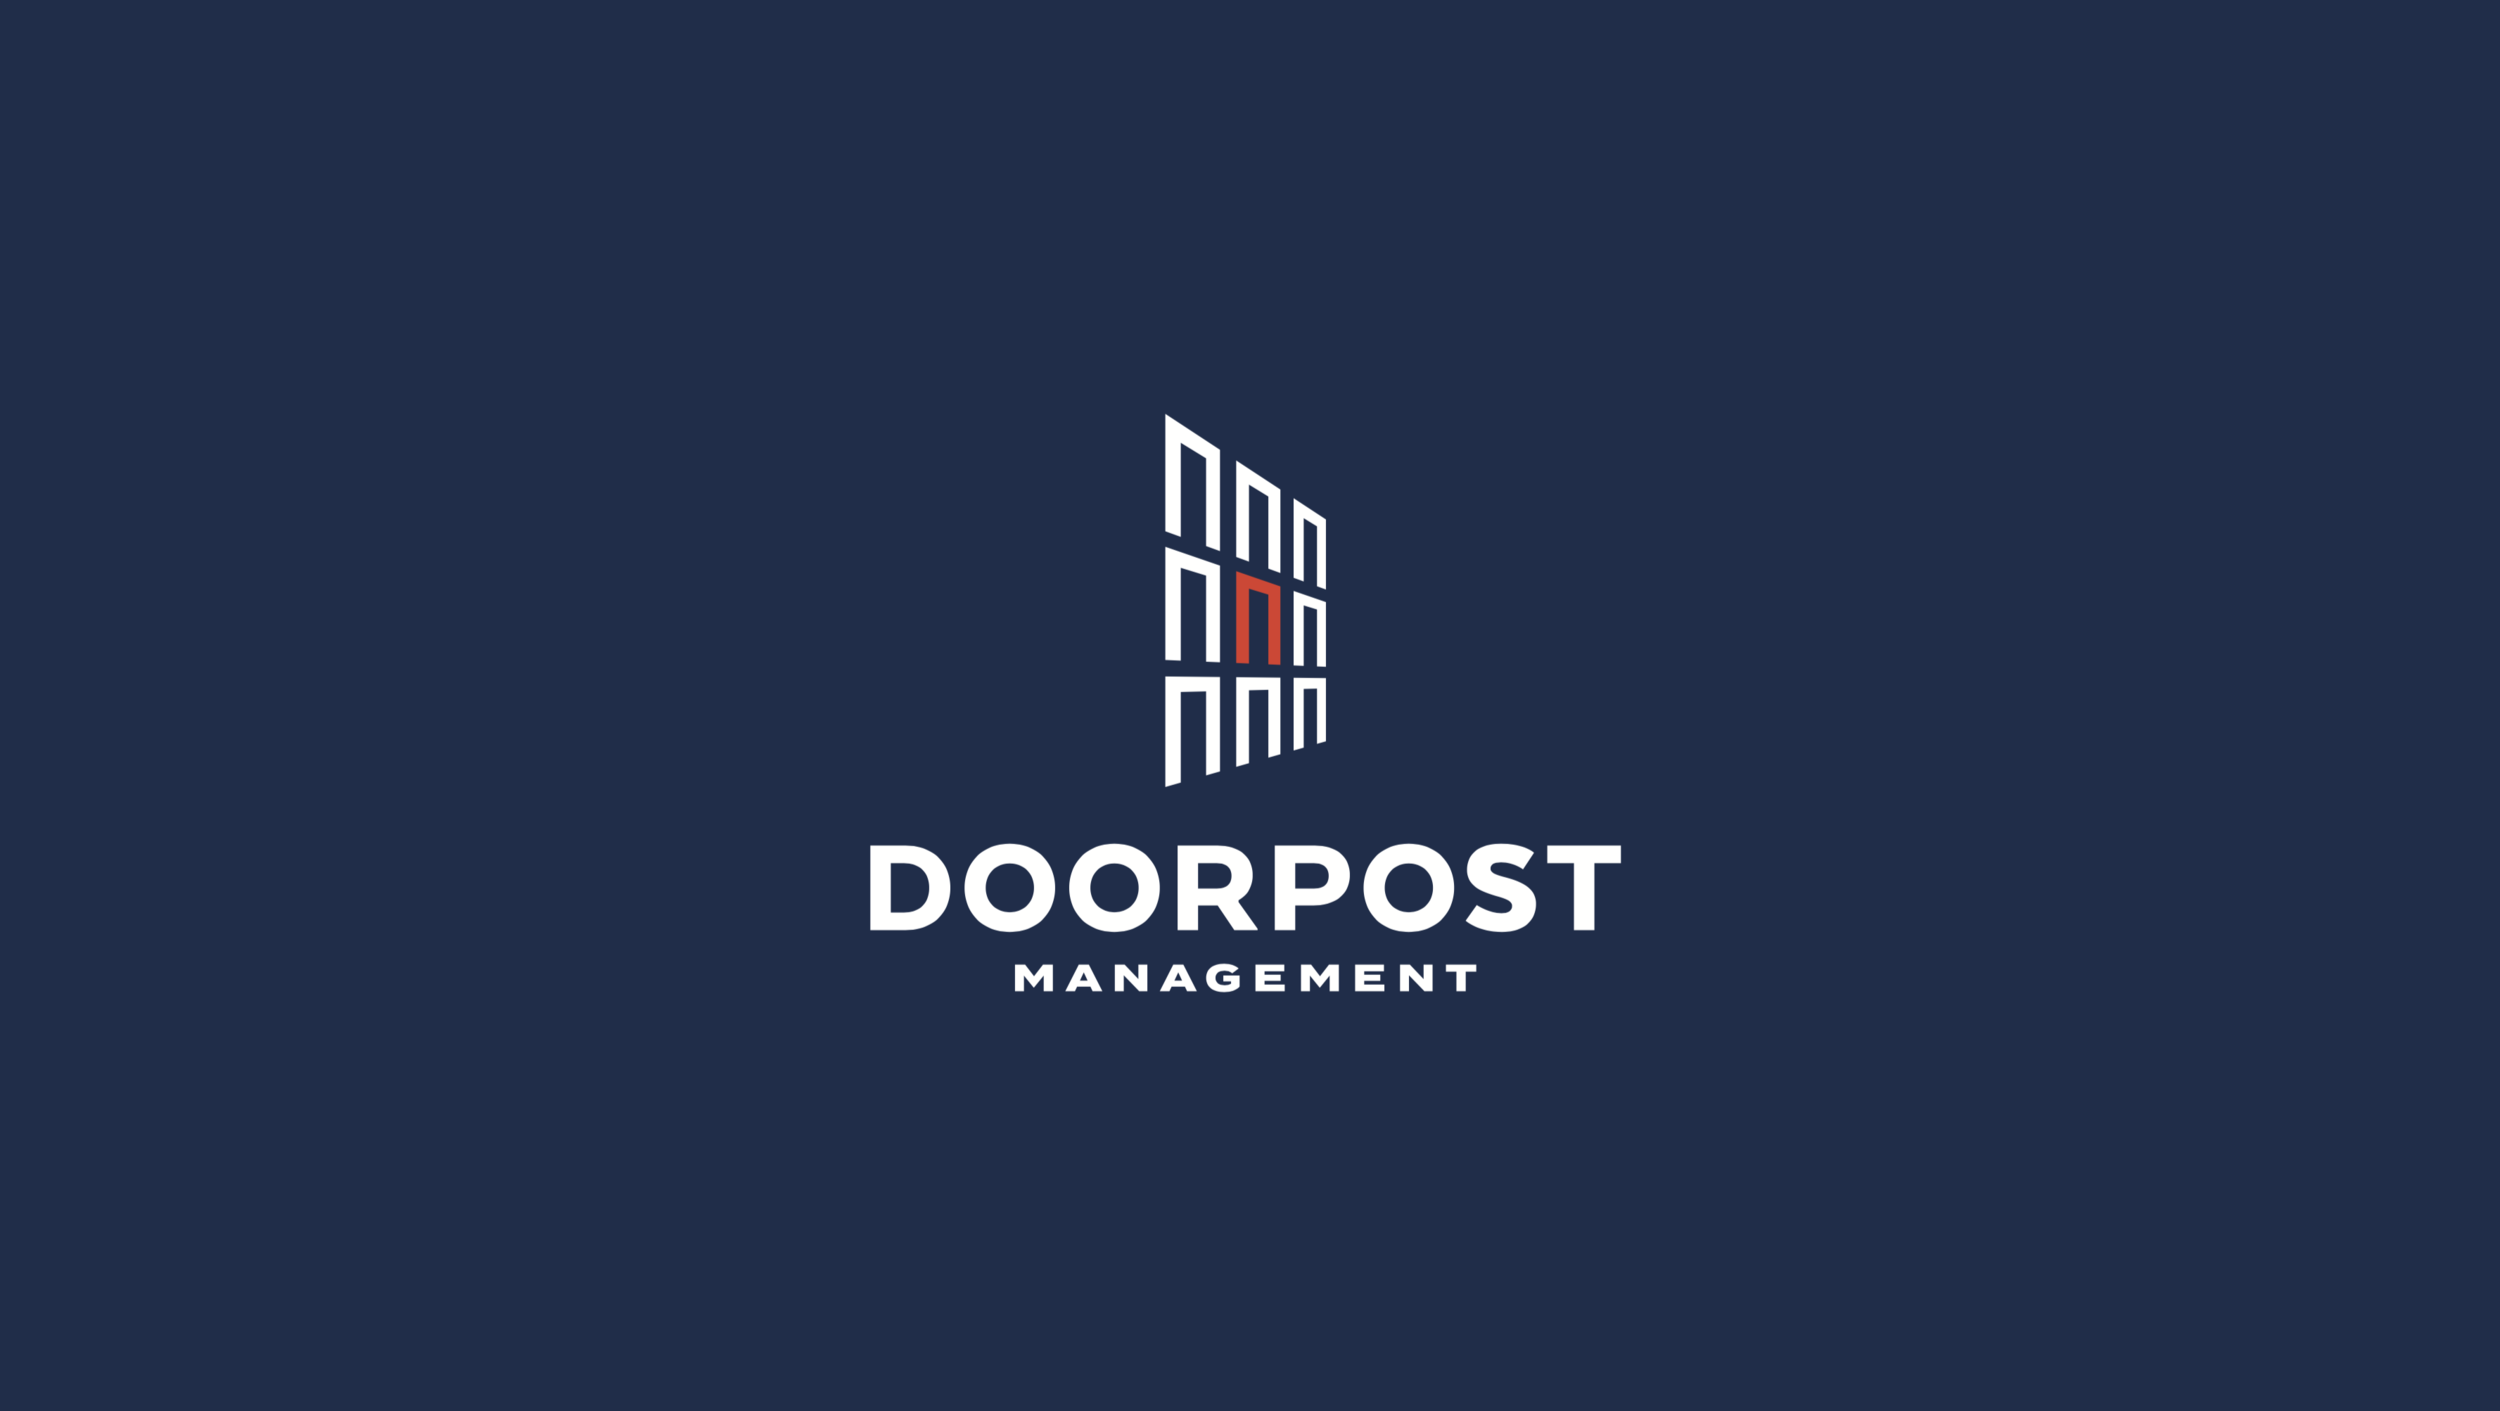 DOORP_Cover.png